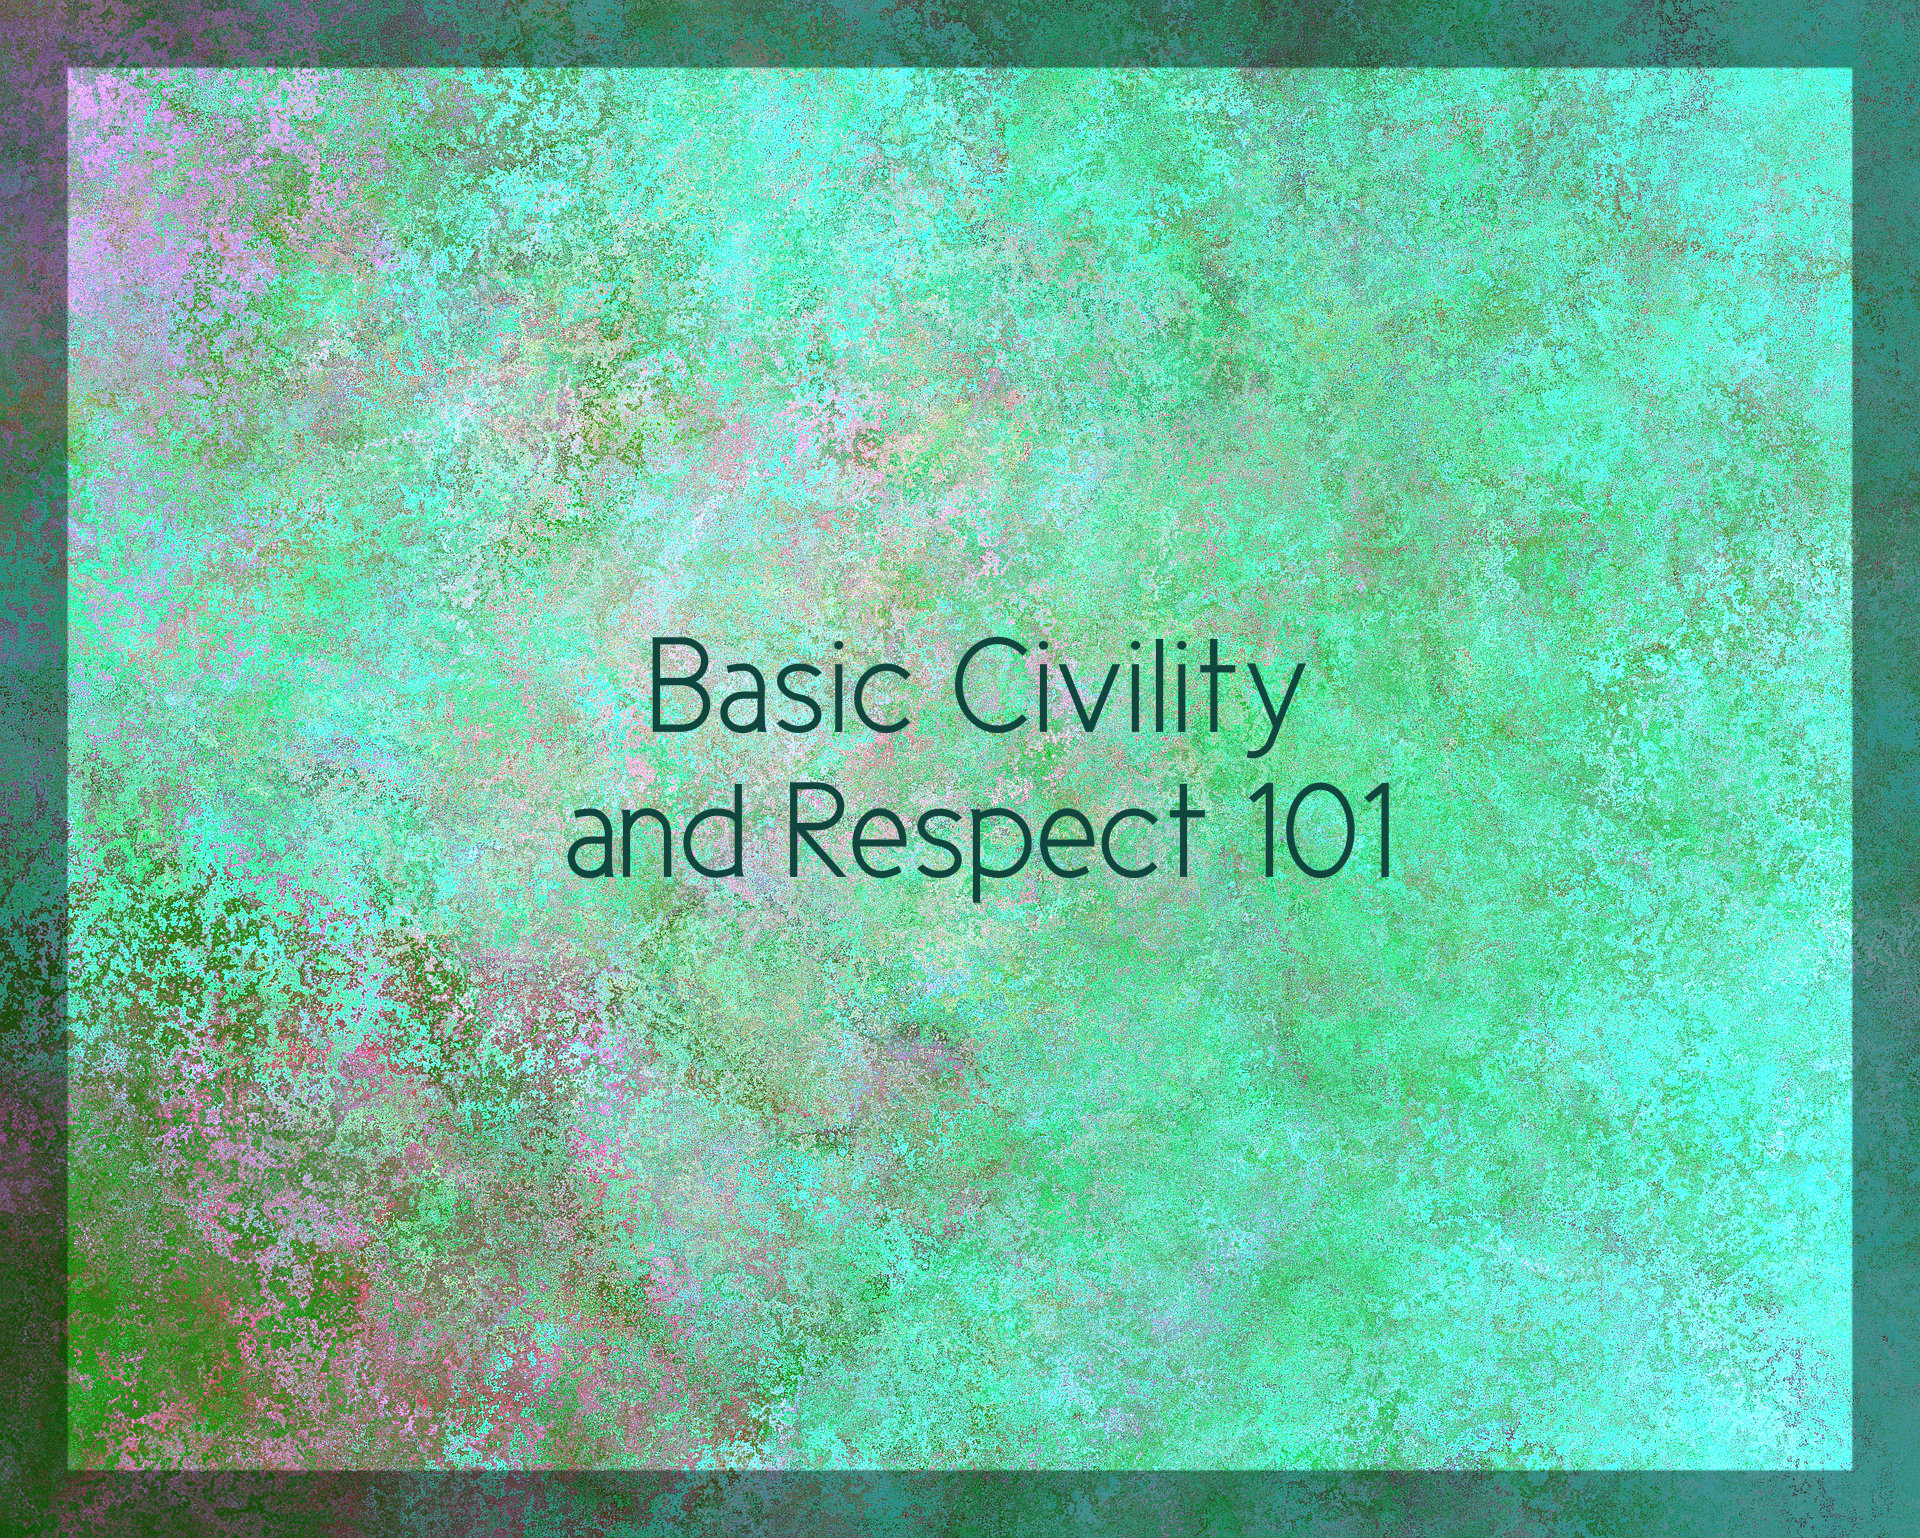 Basic Civility and Respect 101 on blog about workplace behavior in light of #MeToo and #TimesUp movement